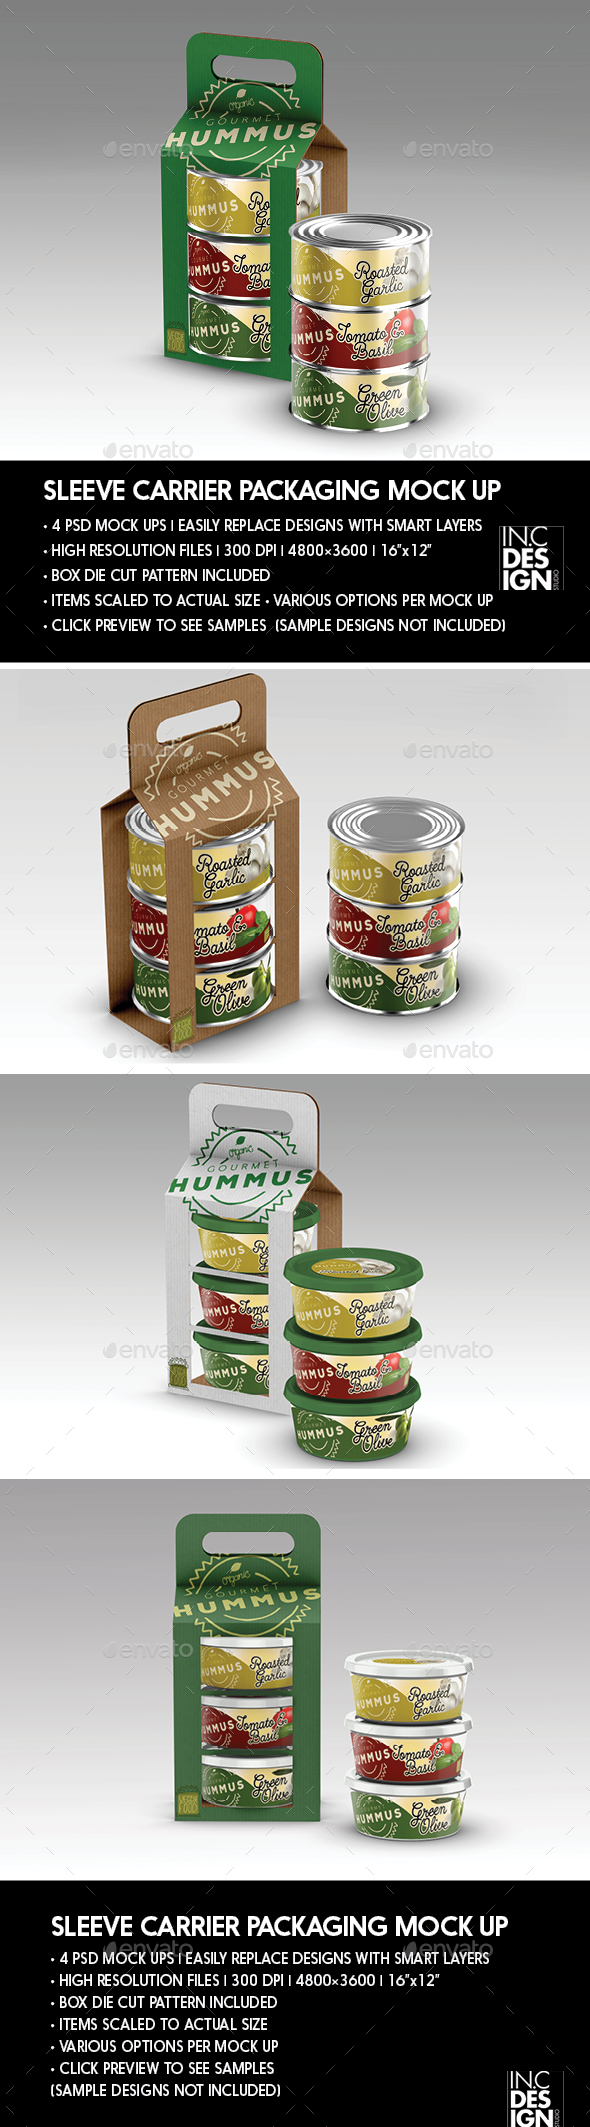 Packaging Mock Up Sleeve Carrier for Cans or Tubs